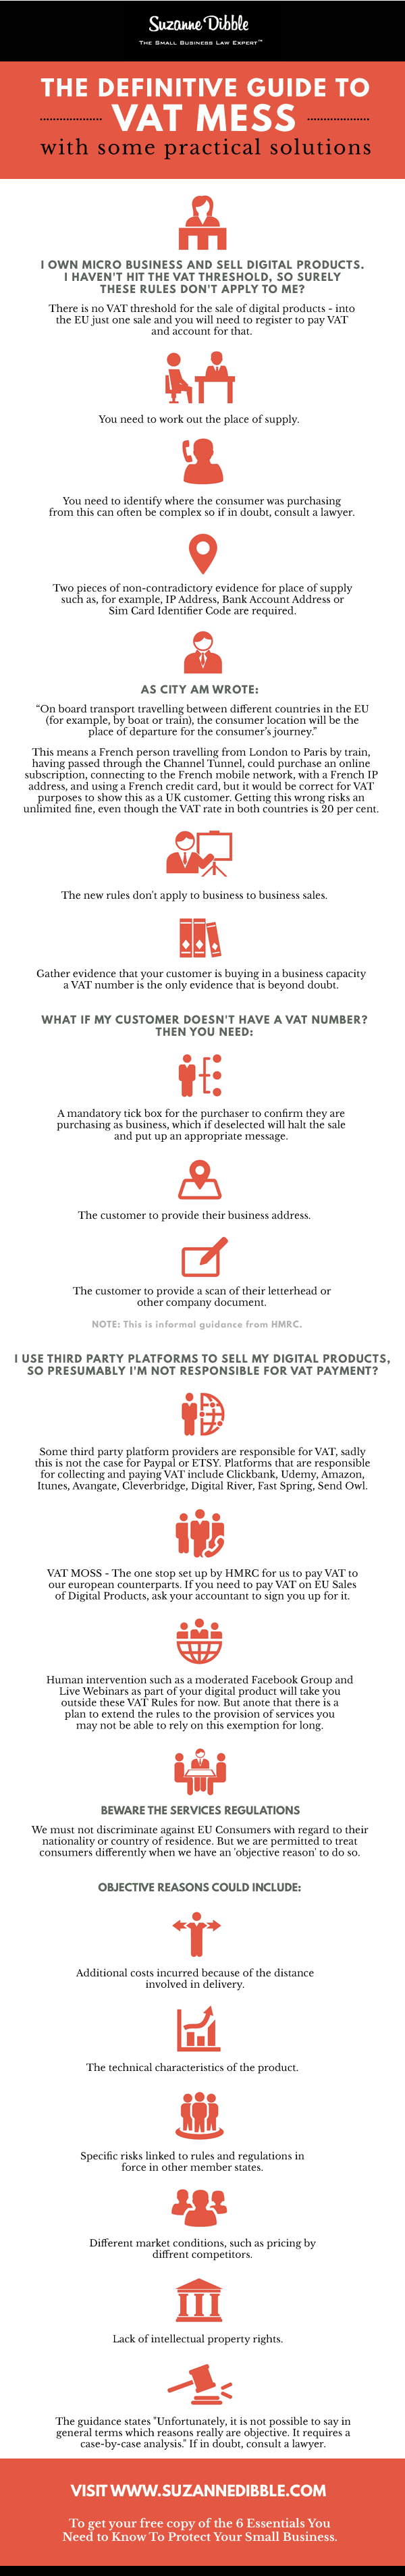 the-definitive-guide-to-vat-mess-with-some-practical-solutions